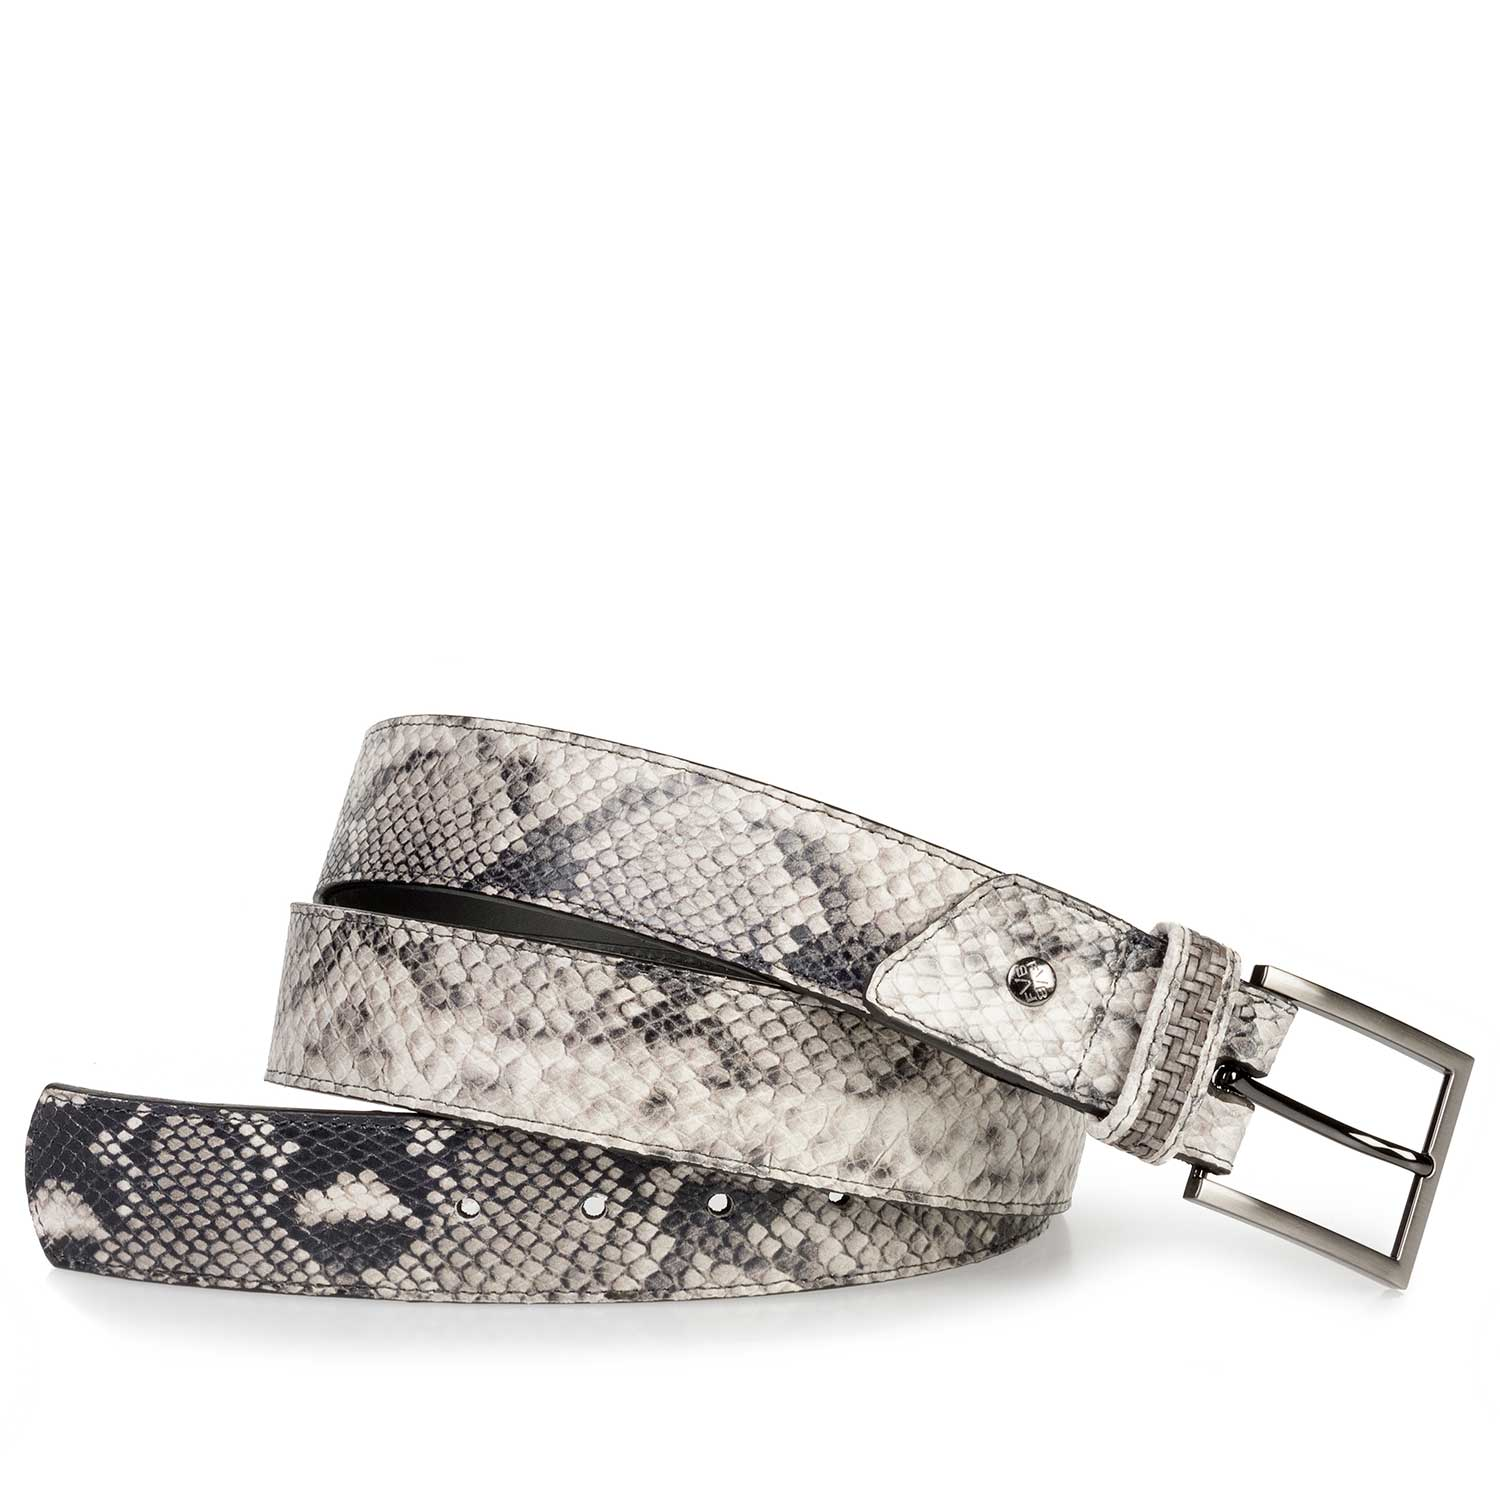 75179/00 - Grey leather belt with a snake print